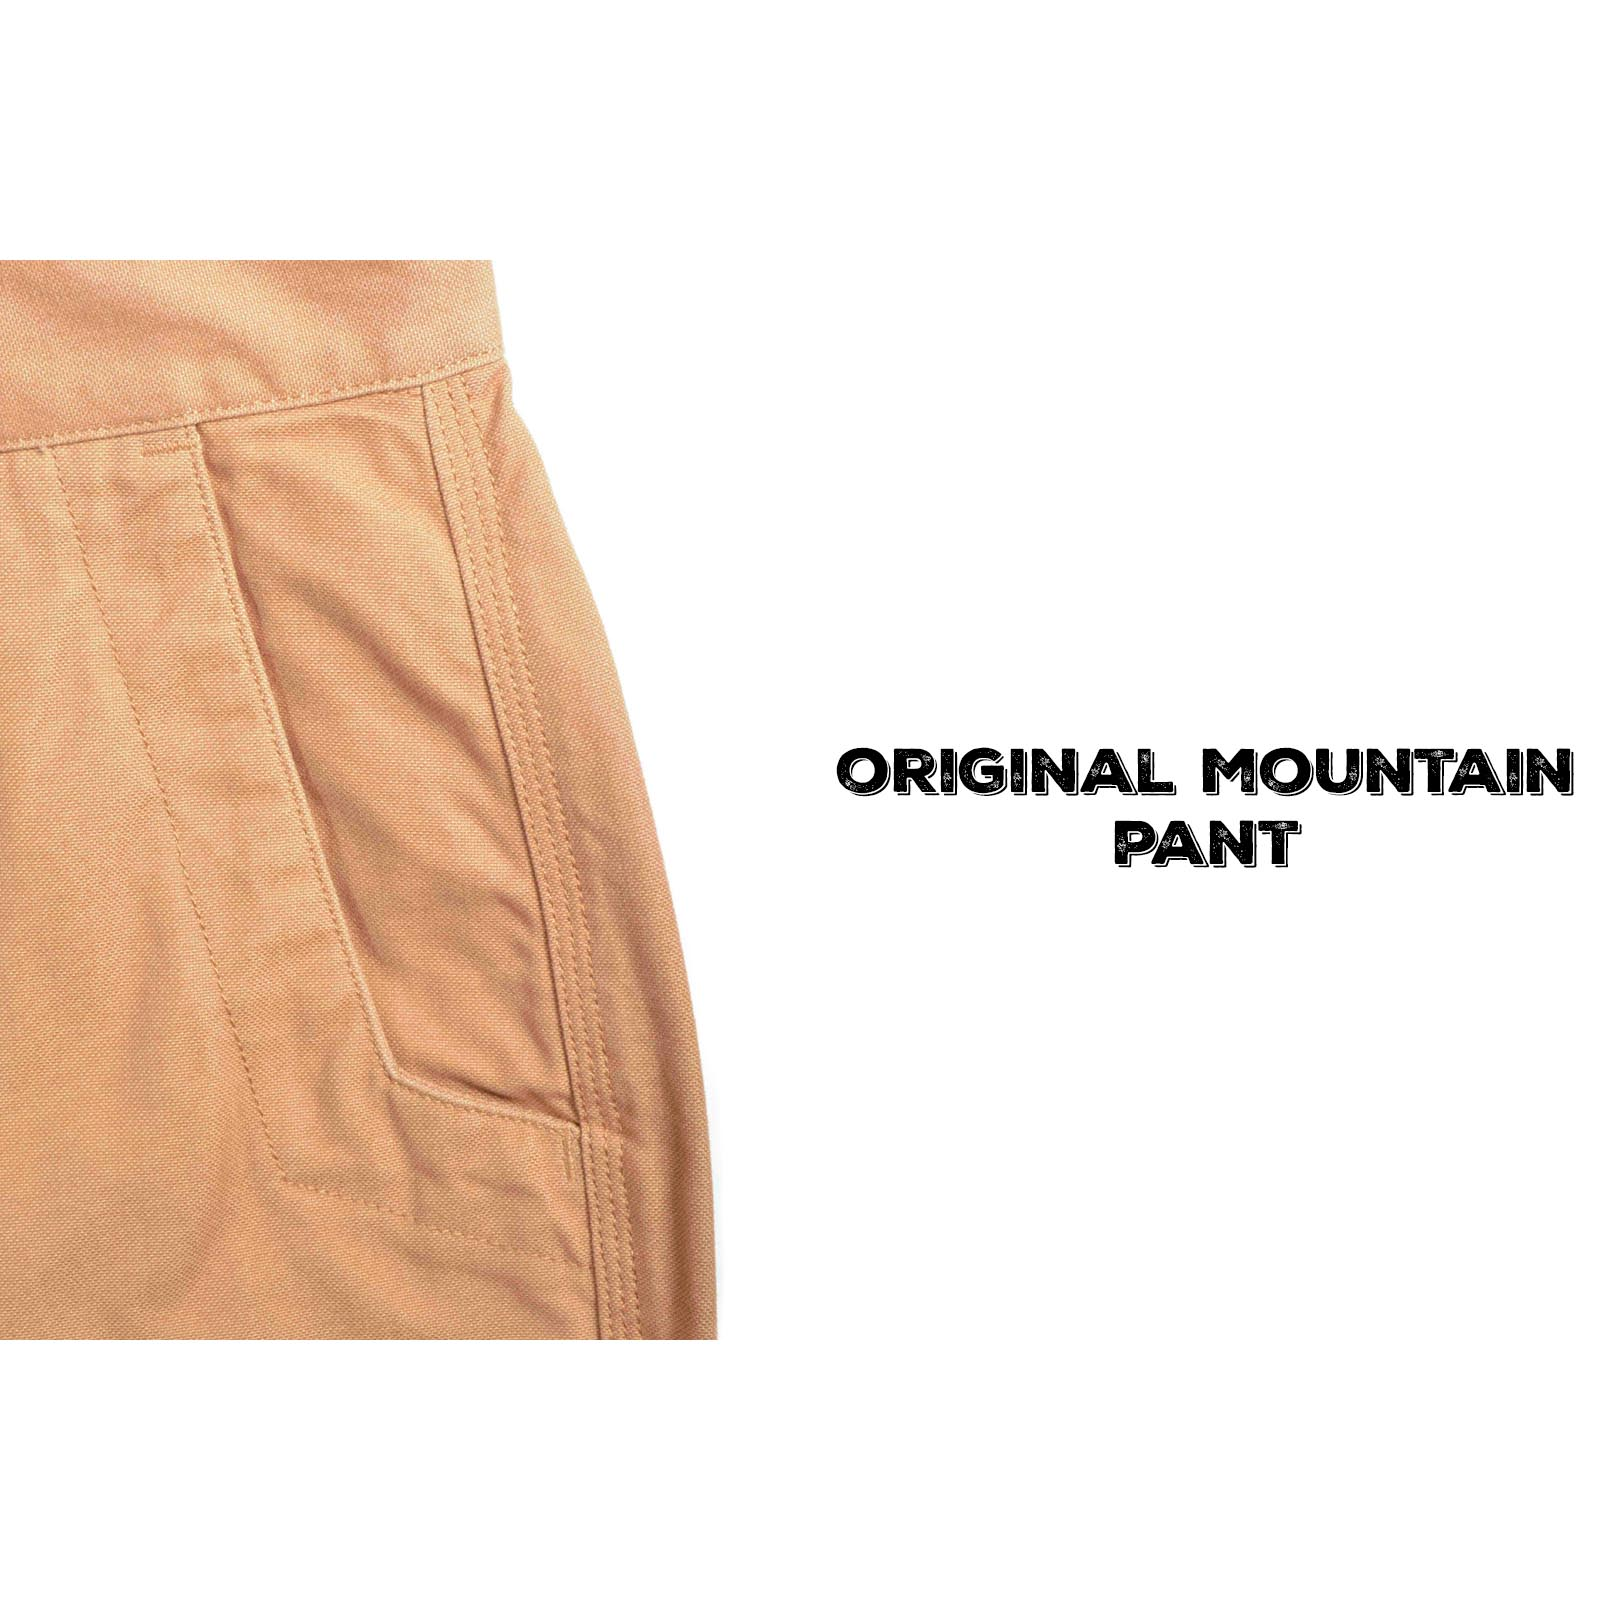 Original Mountain Pant Detail